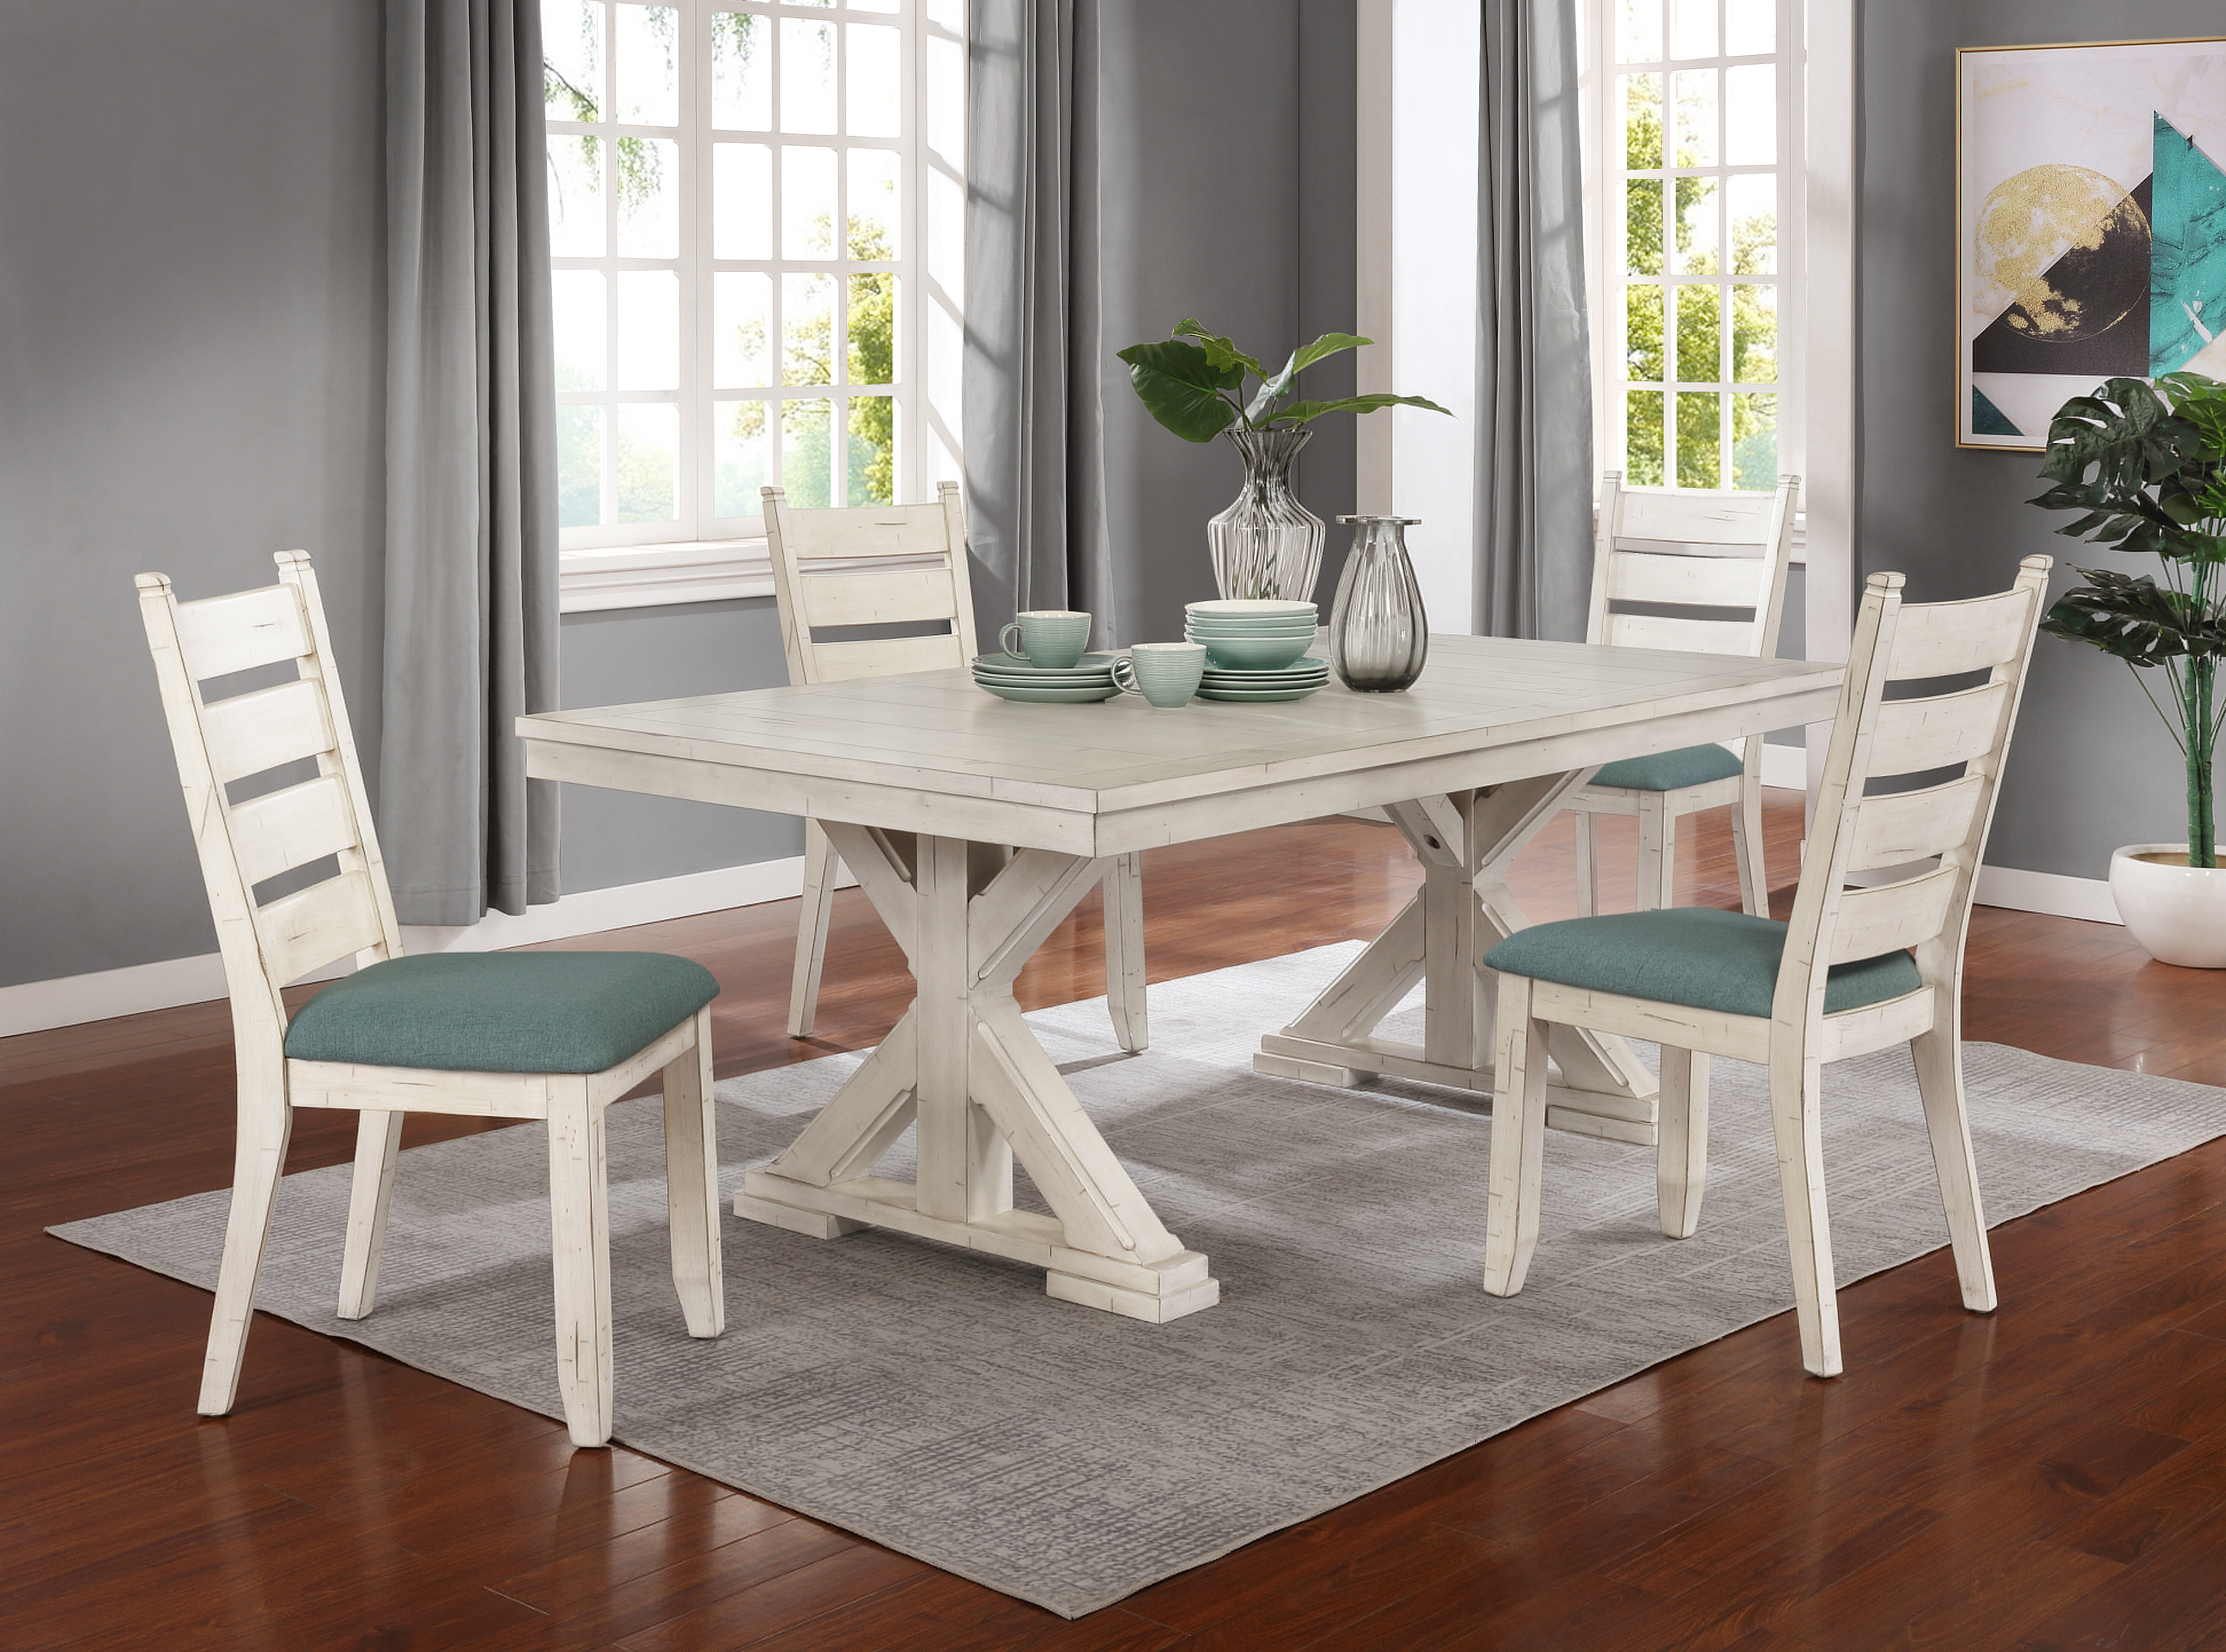 Scarborough 5 Piece Dining Set Inside 2017 Middleport 5 Piece Dining Sets (View 17 of 20)